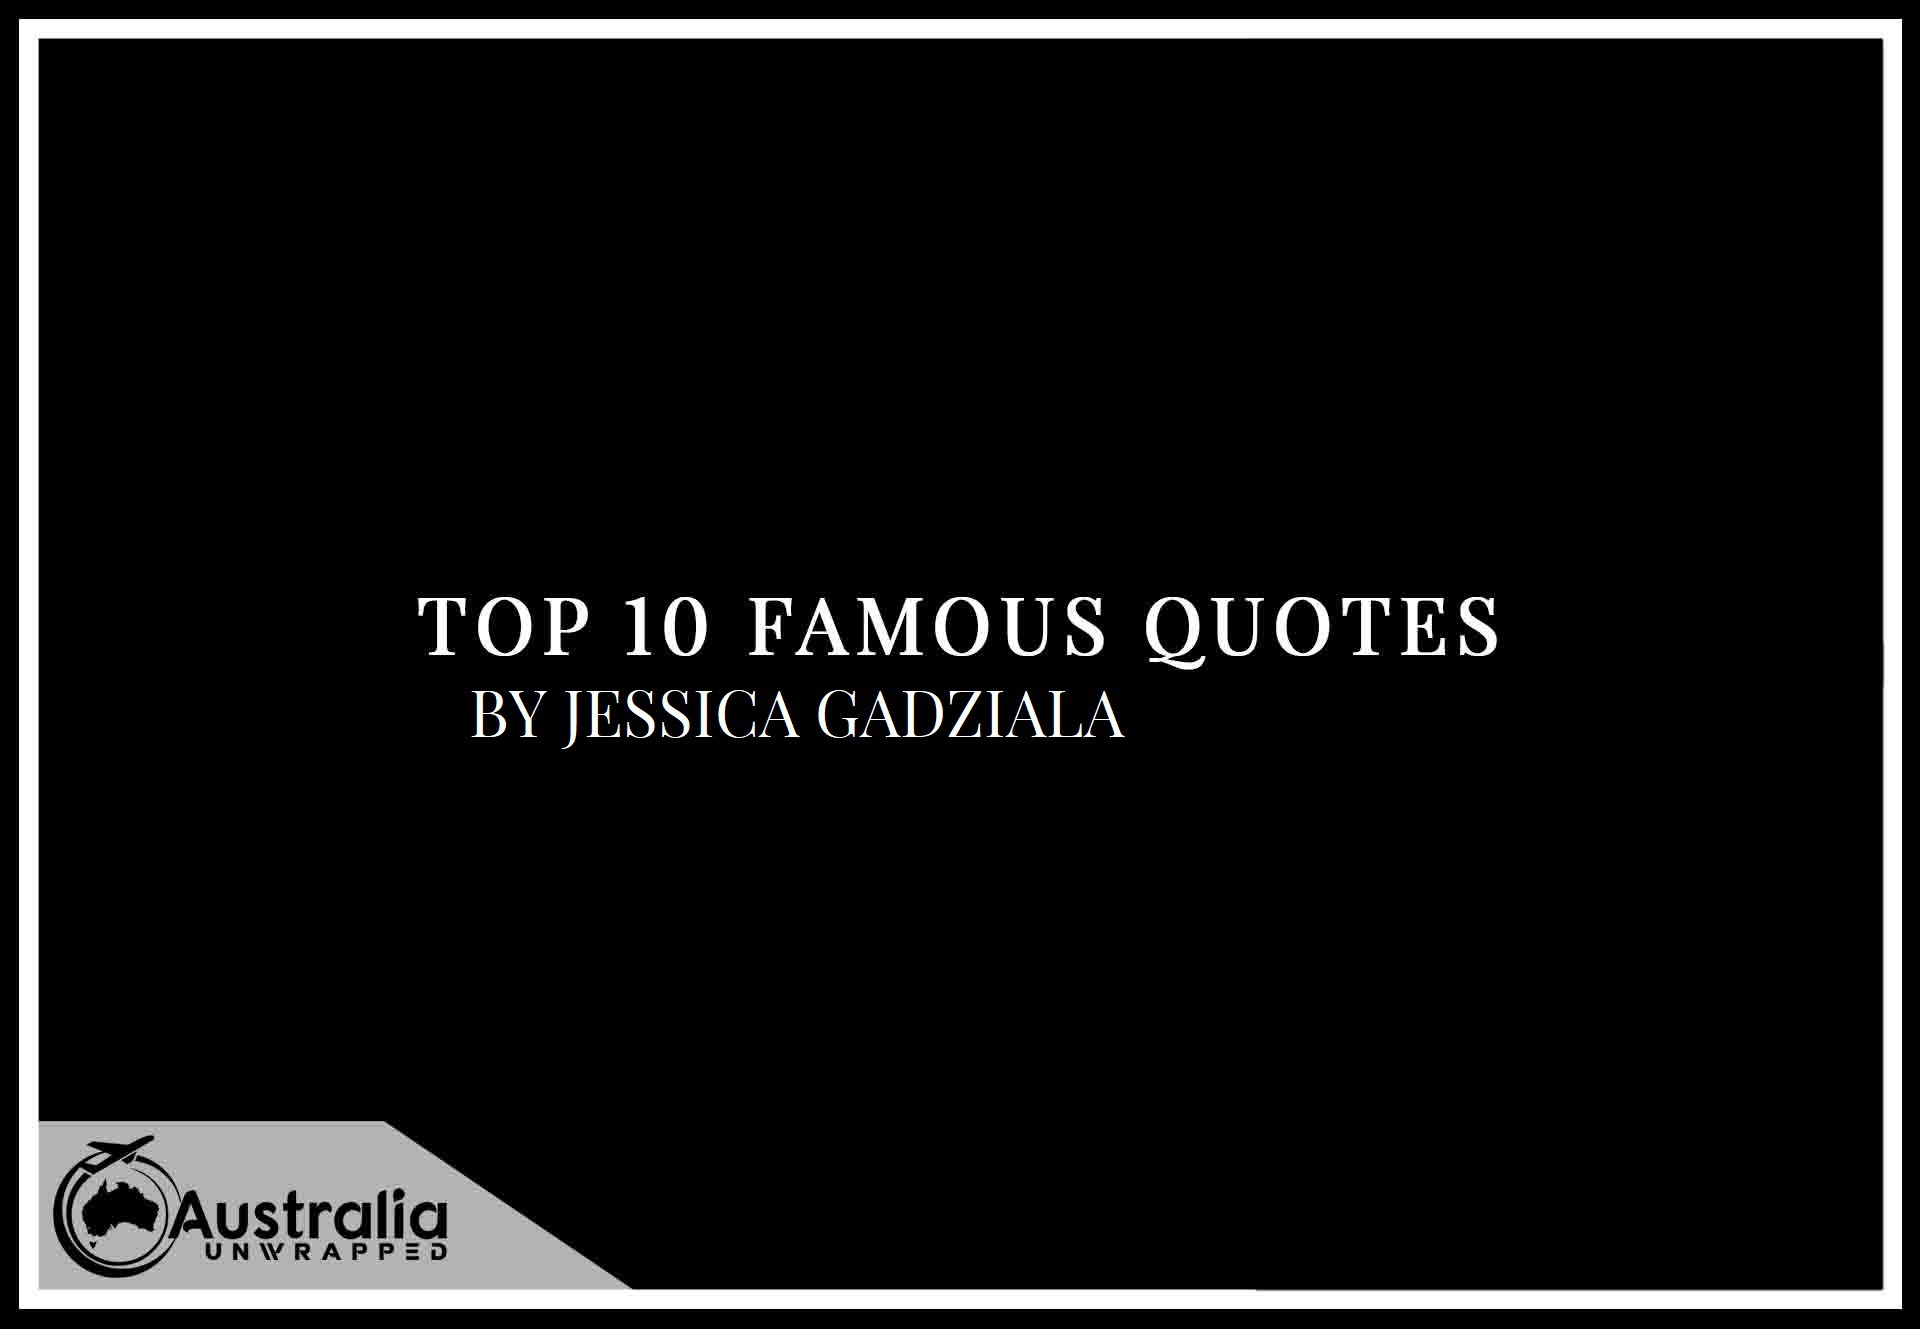 Top 10 Famous Quotes by Author Jessica Gadziala